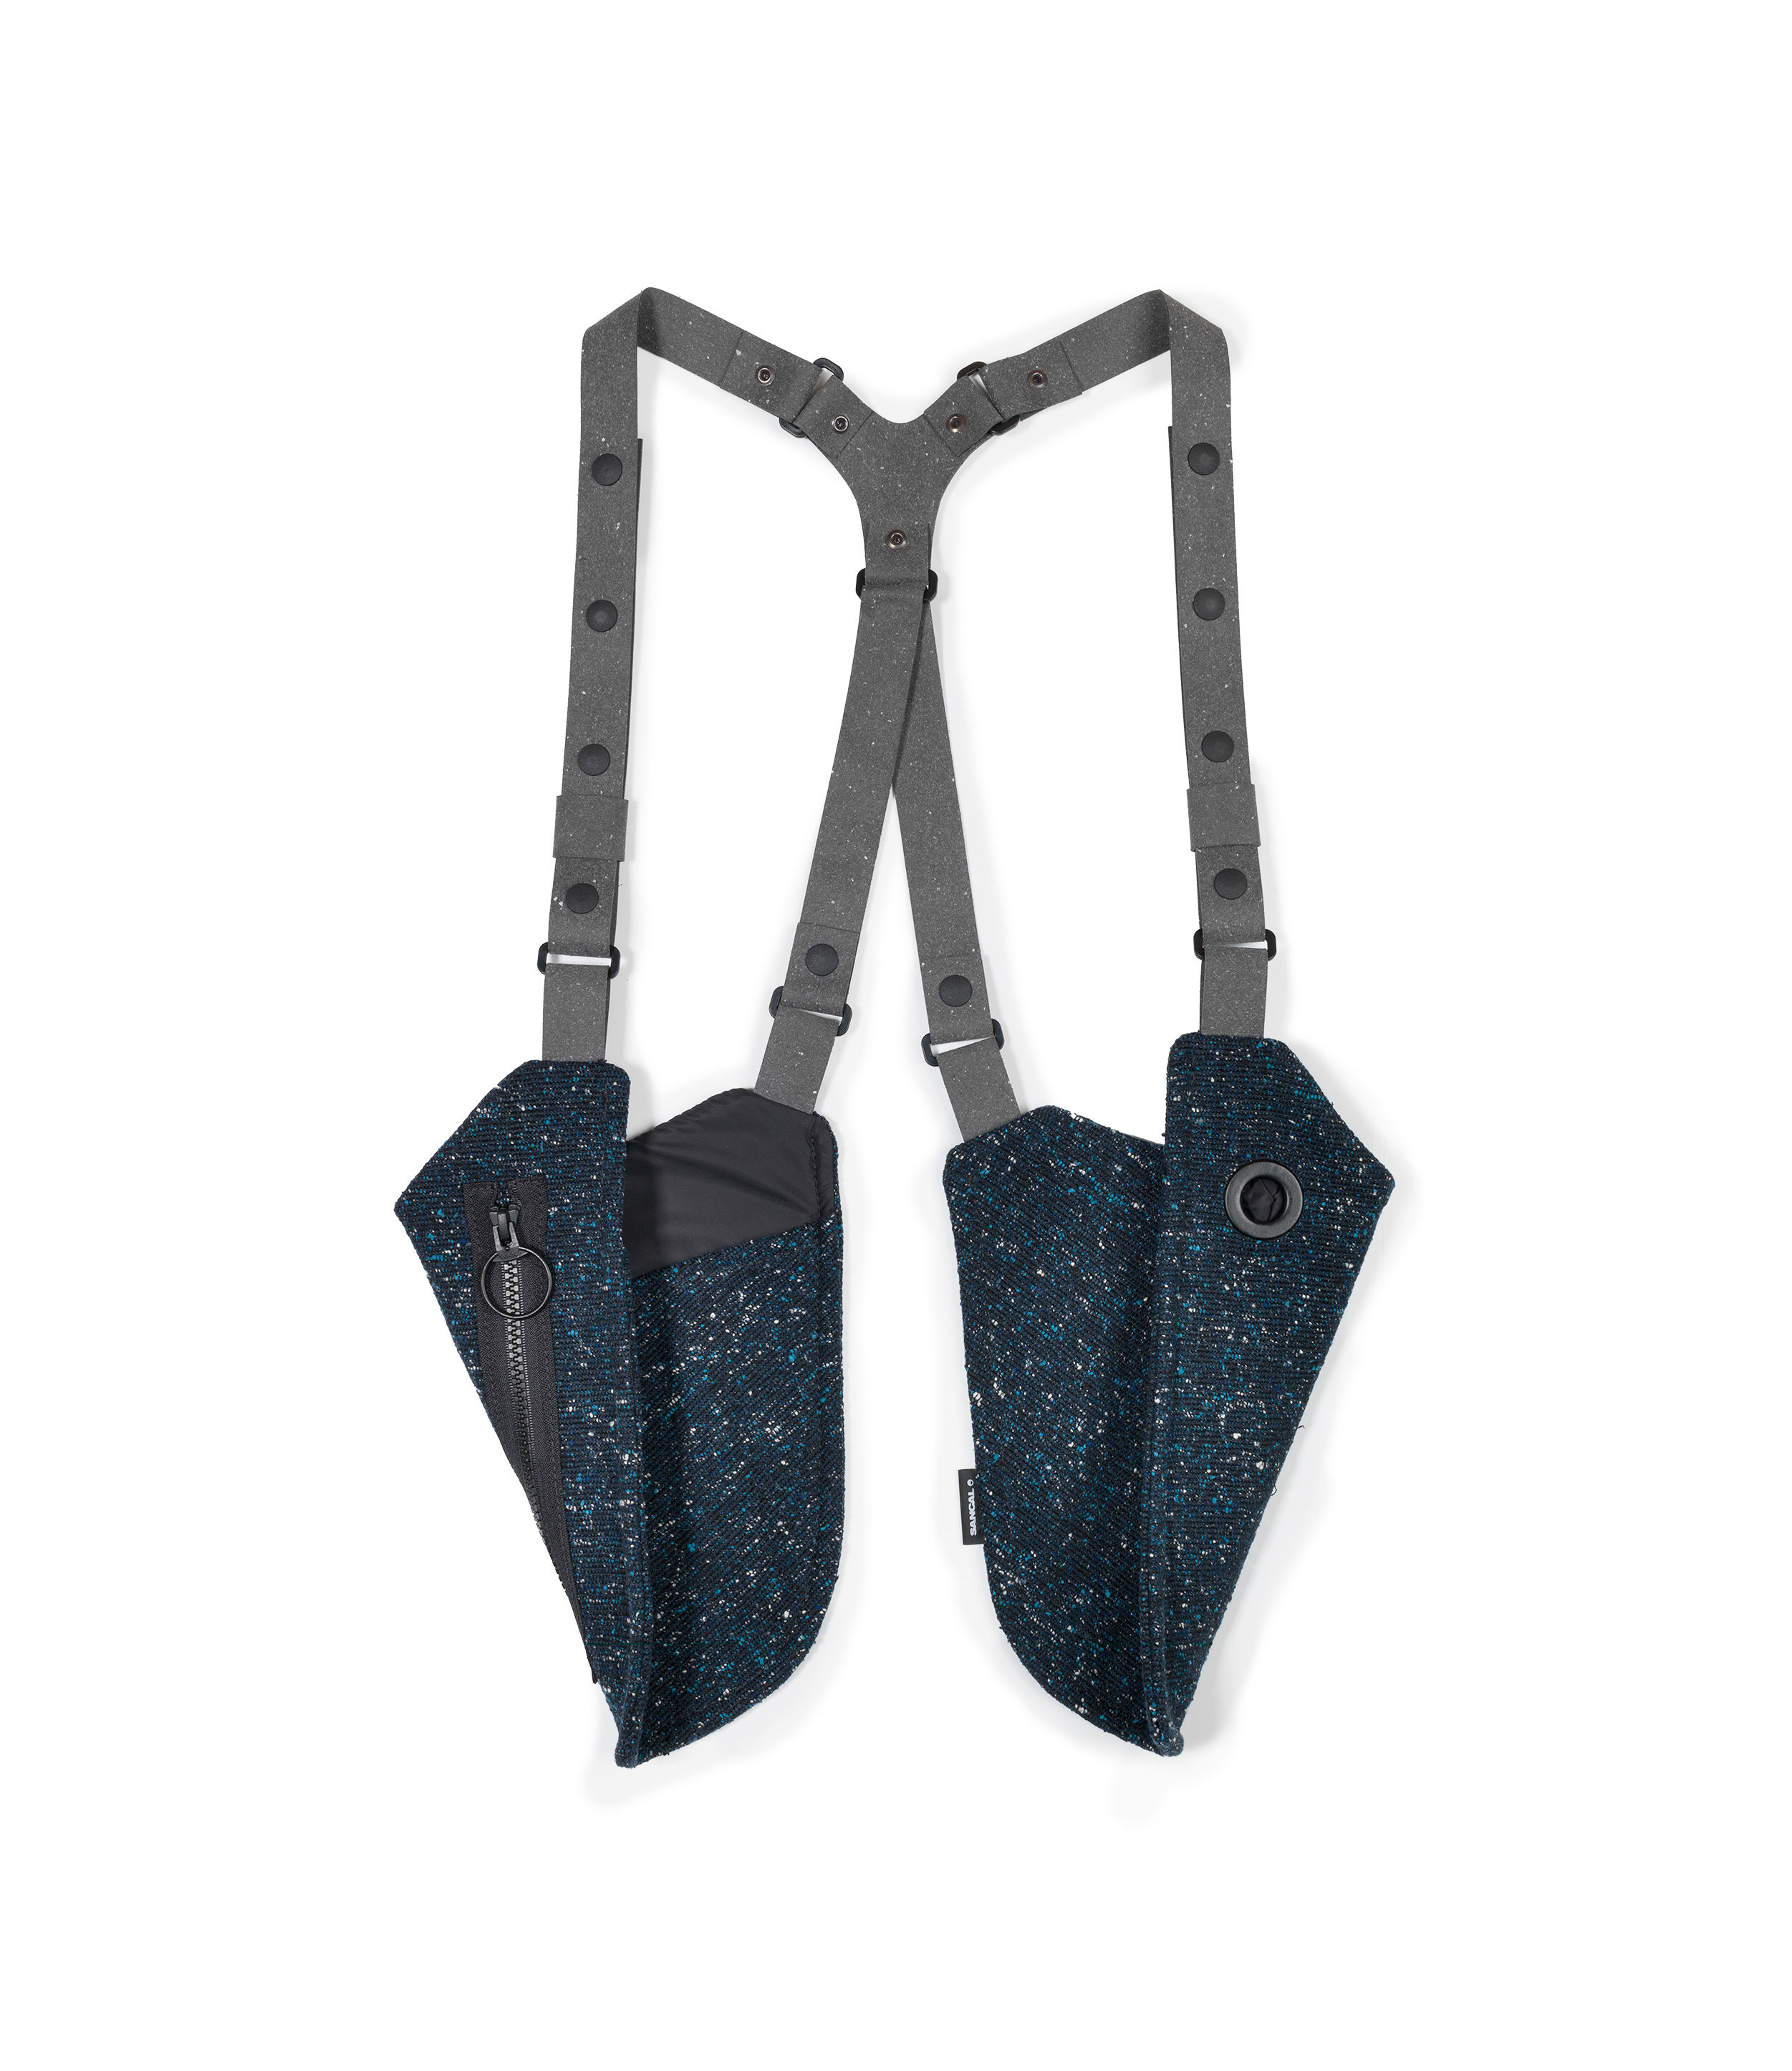 Accessories - Bags, Purses & Luggage - Sin Pistols Sacoche bandoulière - / 2 pockets by Sancal - Navy blue - Polyester, Recycled leather